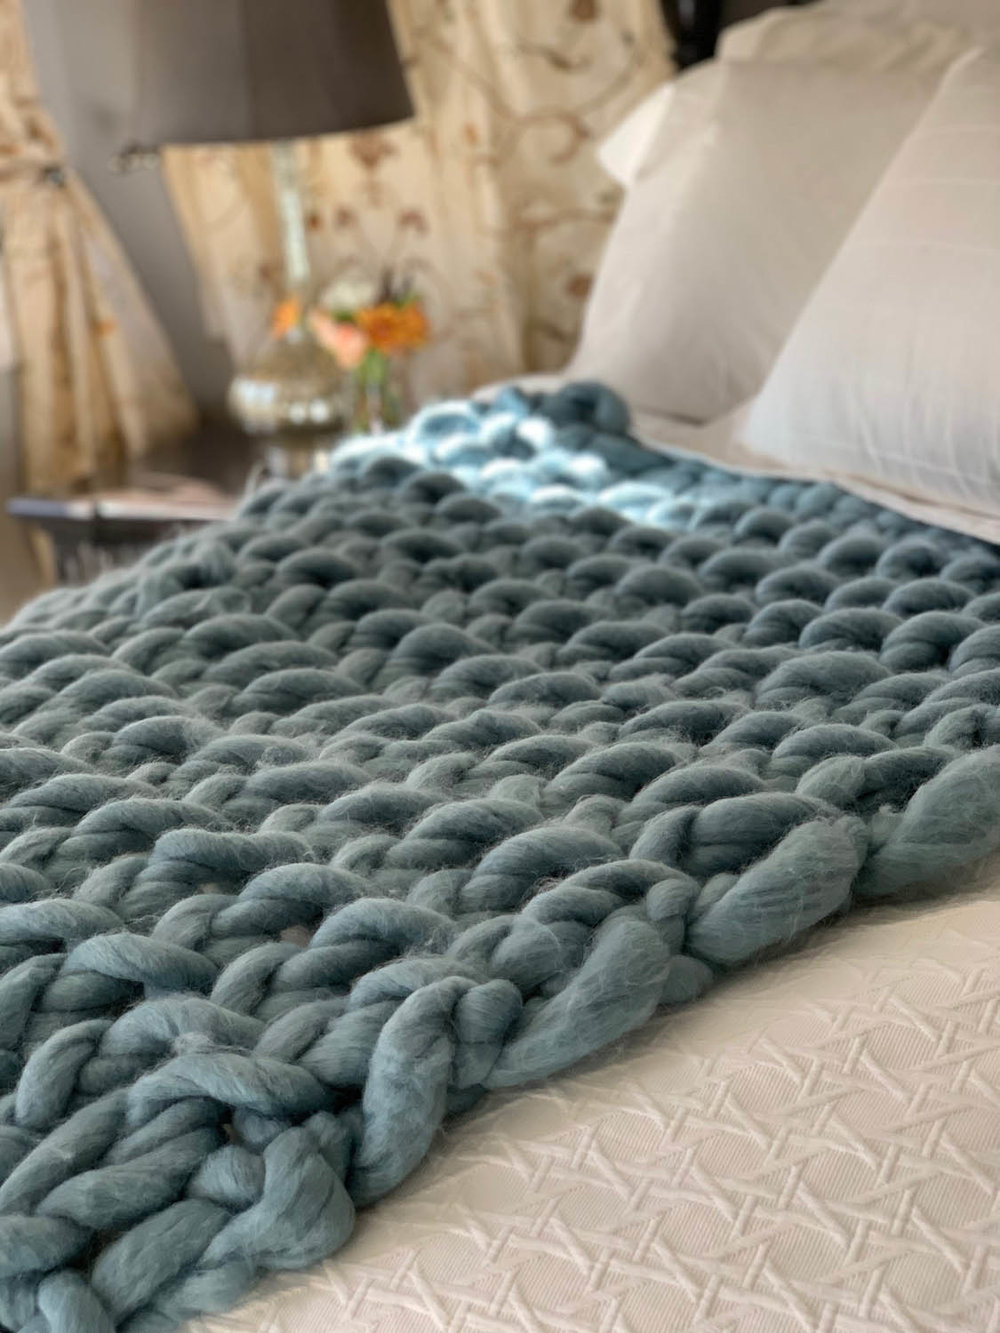 Finished 1-hour easy arm-knitted throw in dusty blue yarn